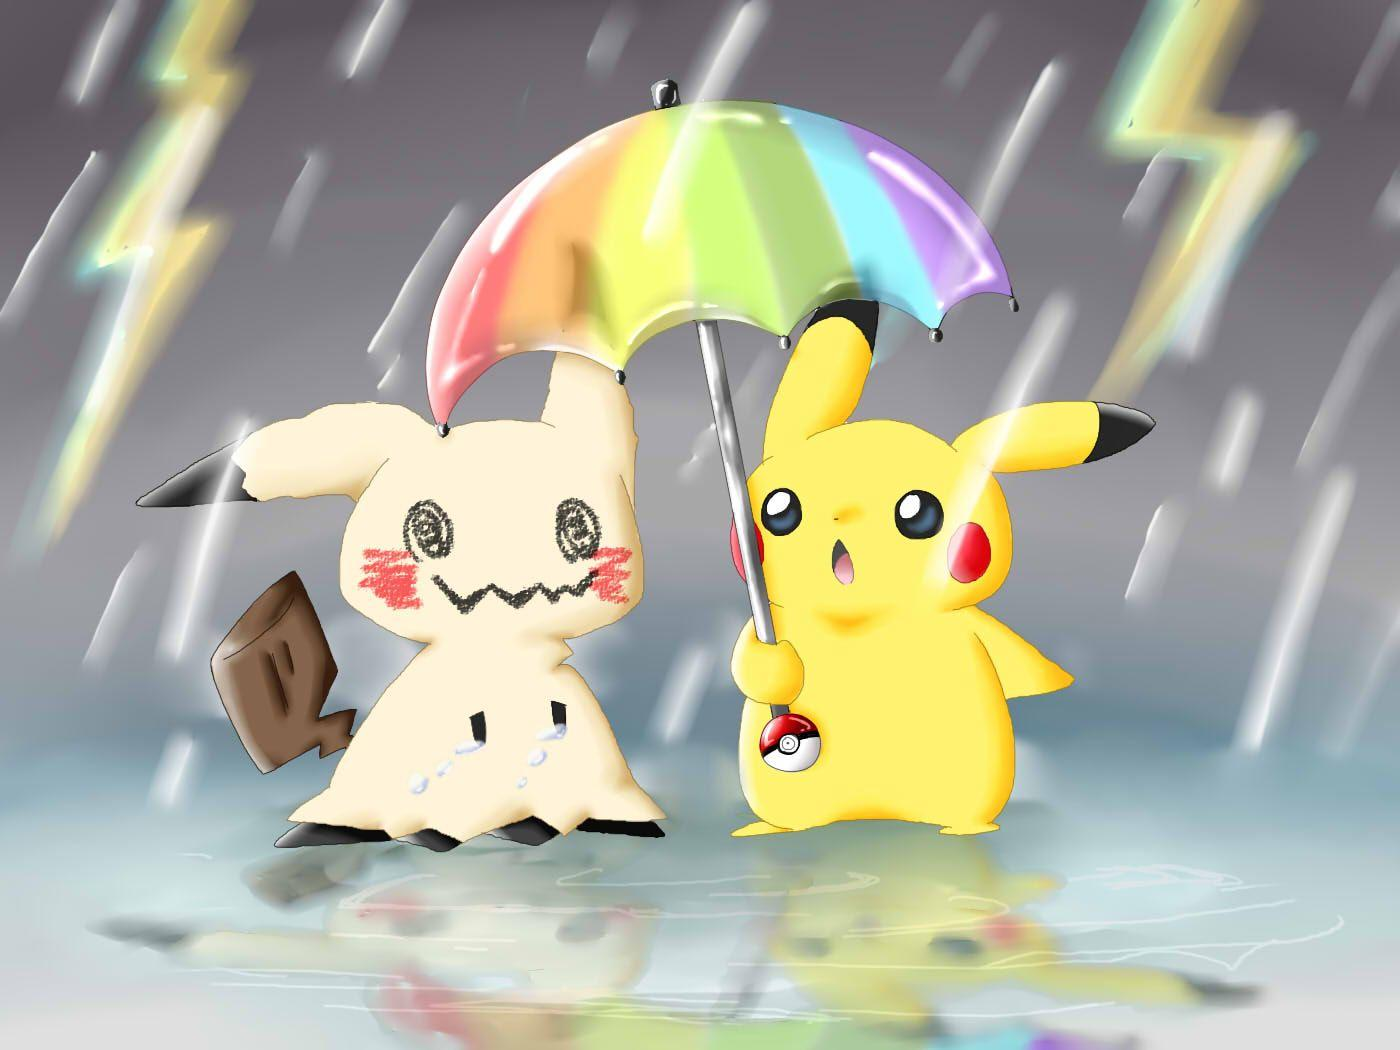 Pikachu protecting Mimikyu from the rain | Mimikyu | Know Your Meme